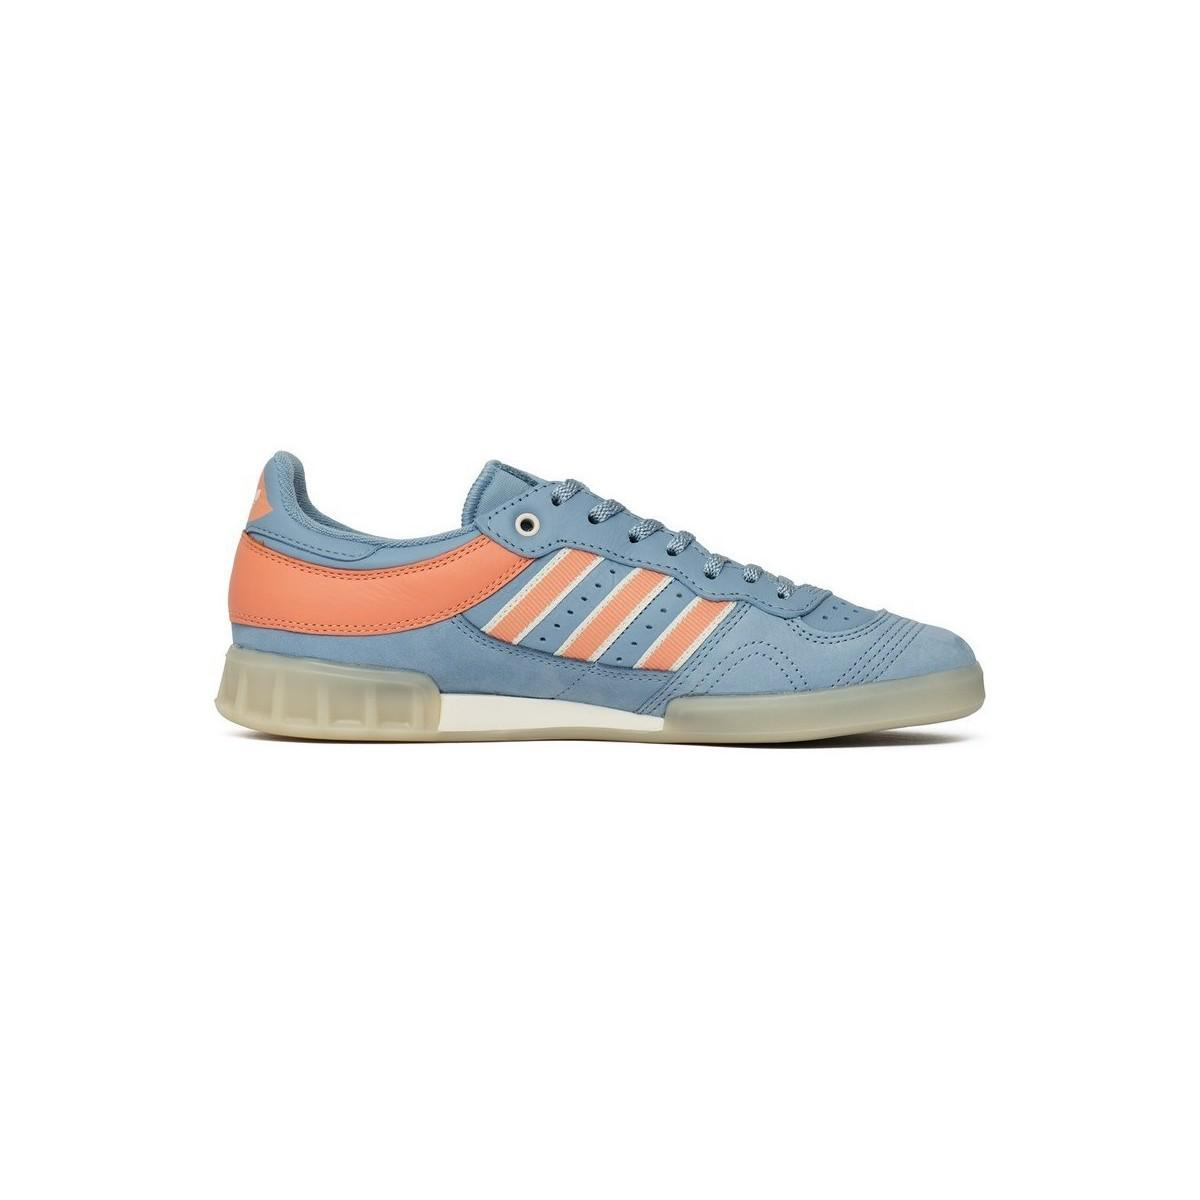 adidas X Oyster Holdings Handball Top Men's Shoes (trainers) In Orange for Men